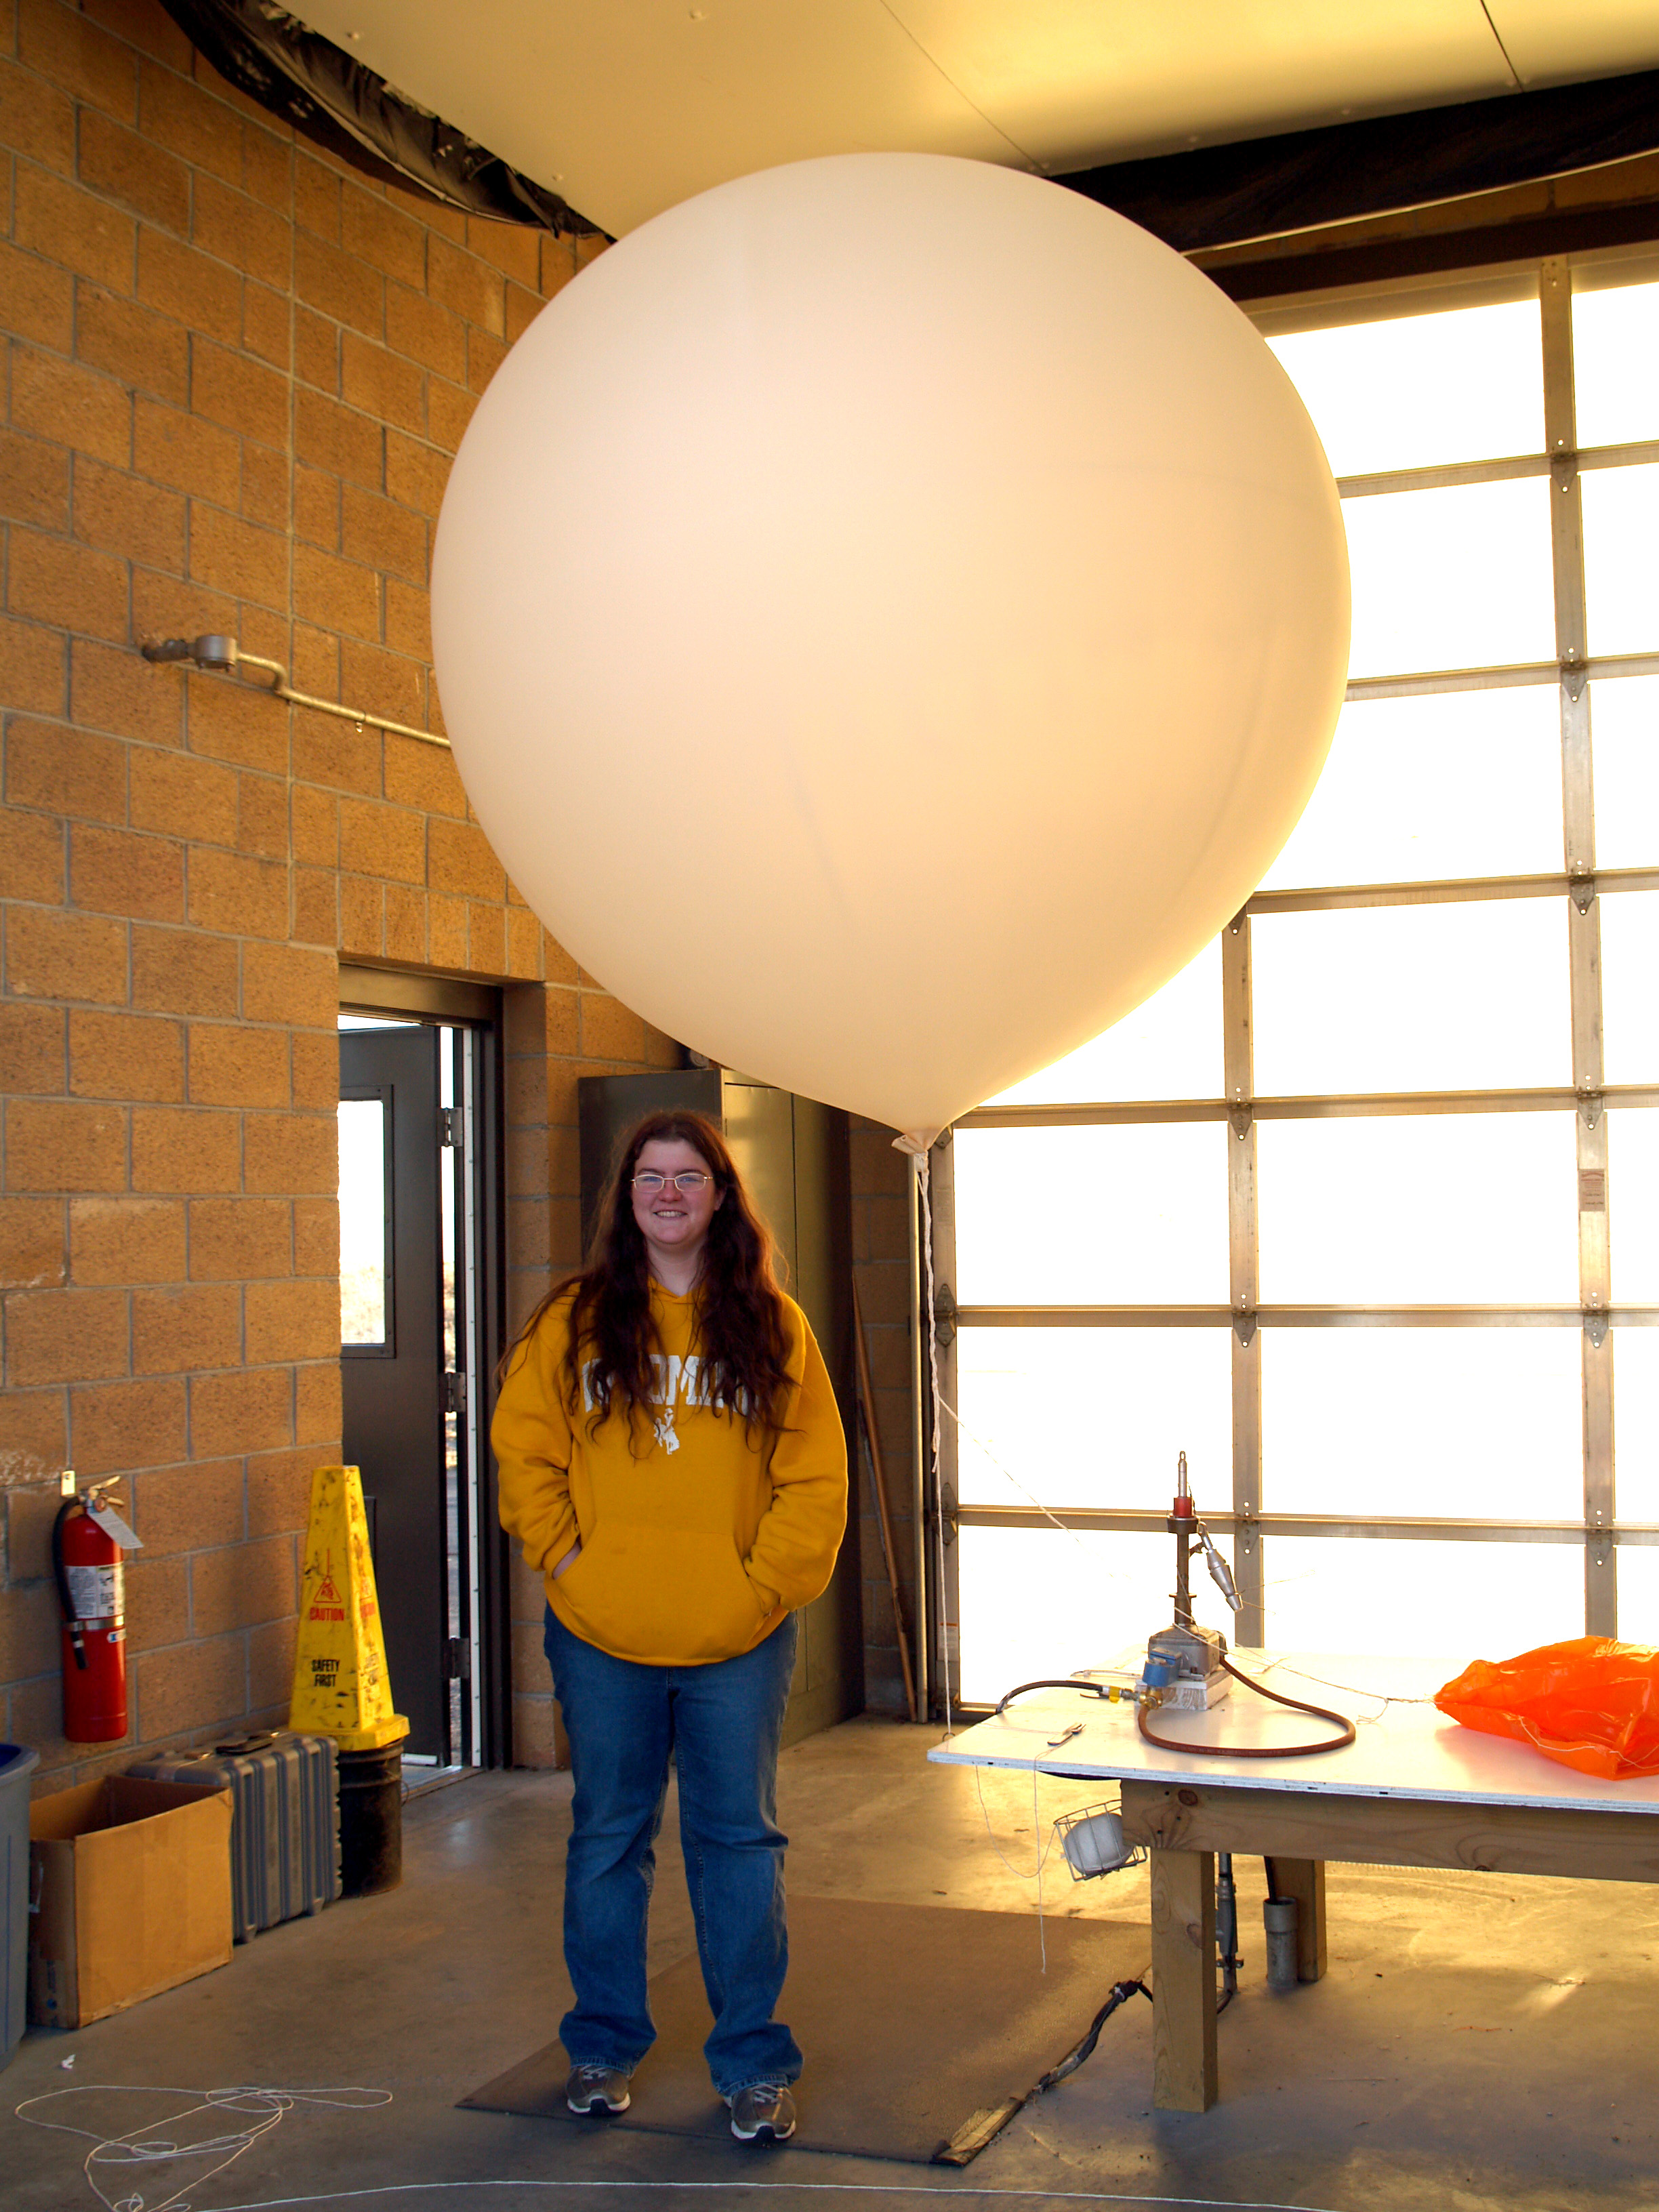 File Nws Weather Balloon Station Riverton Wy Jpg